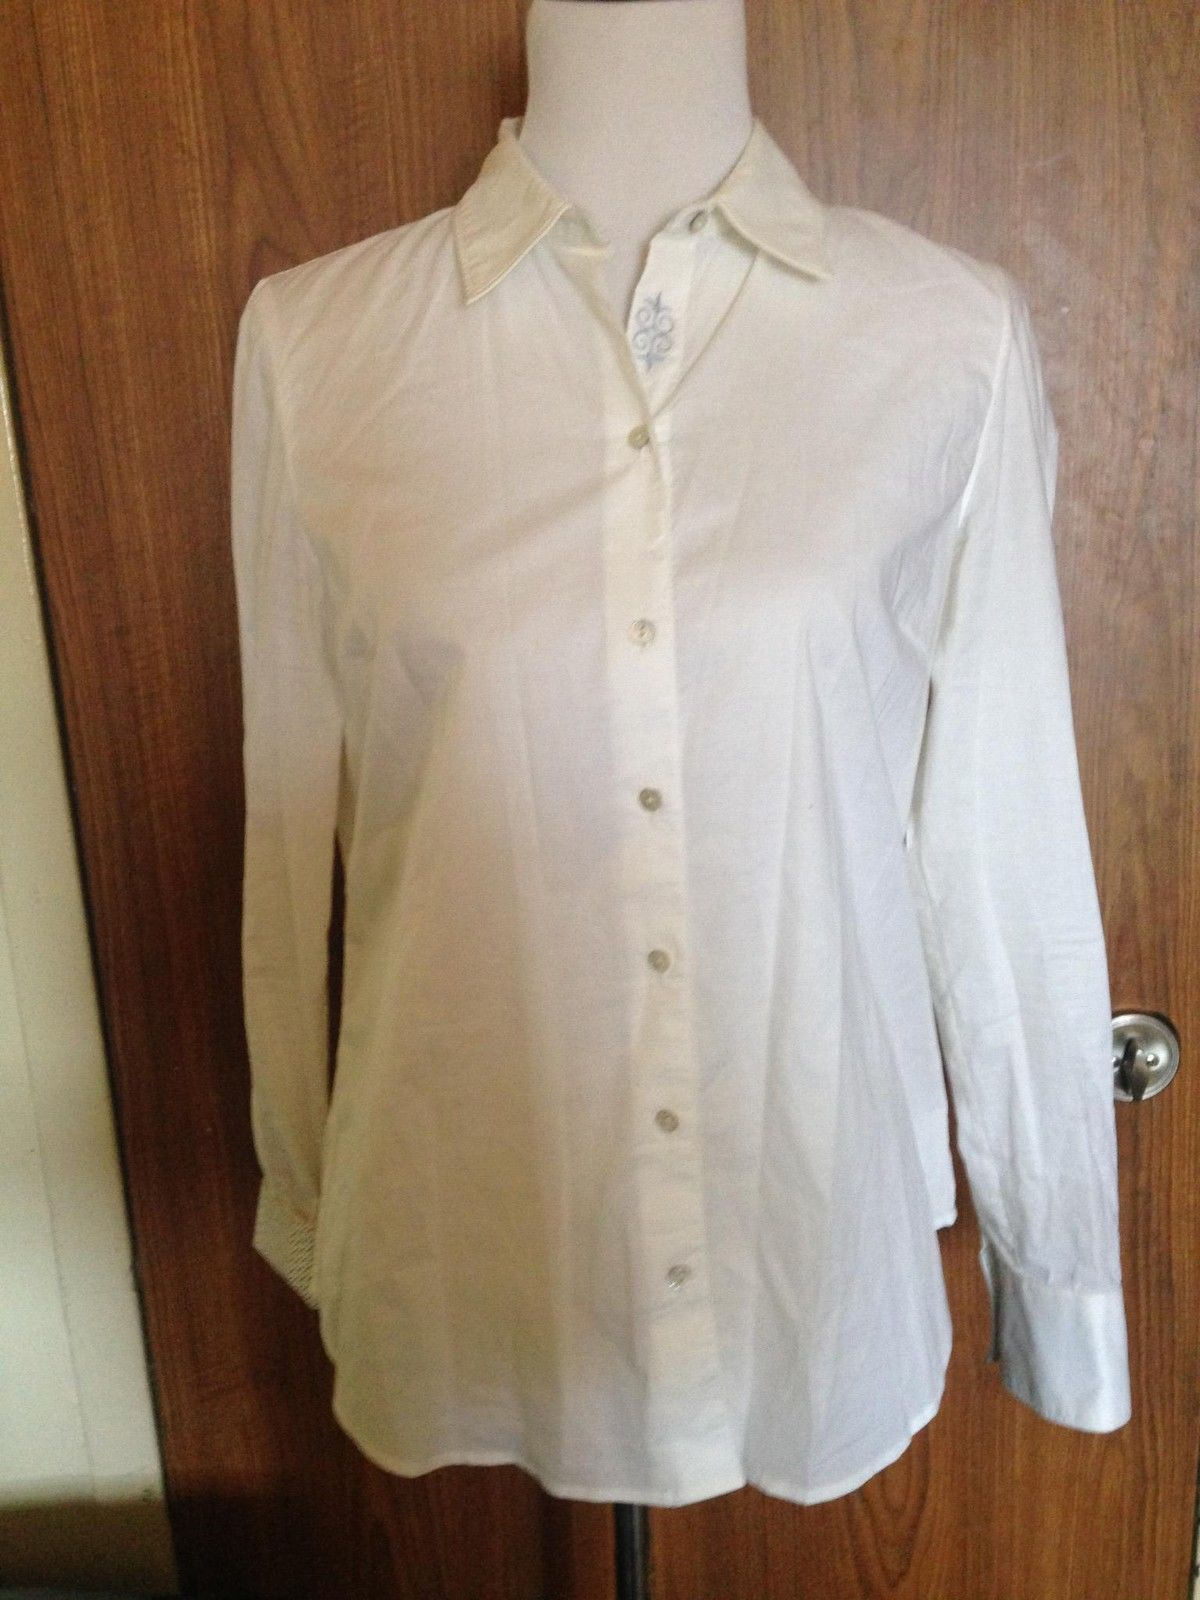 7656fb0b Robert Graham Slim Fit White Shirt Women's SZ M Made in India - $98.01